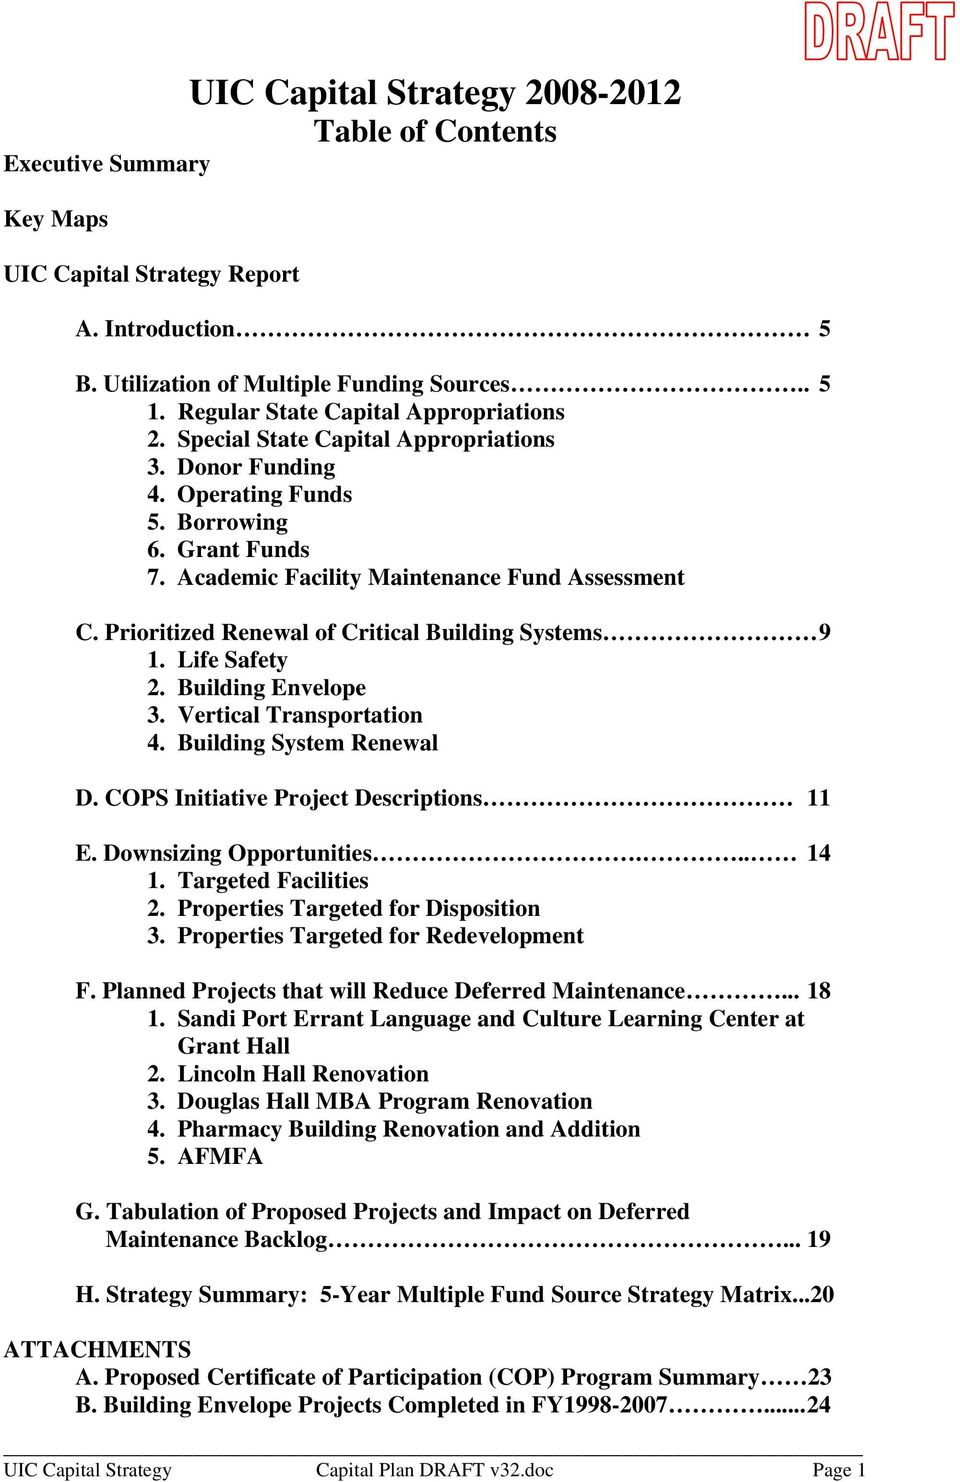 Prioritized Renewal of Critical Building Systems 9 1. Life Safety 2. Building Envelope 3. Vertical Transportation 4. Building System Renewal D. COPS Initiative Project Descriptions 11 E.